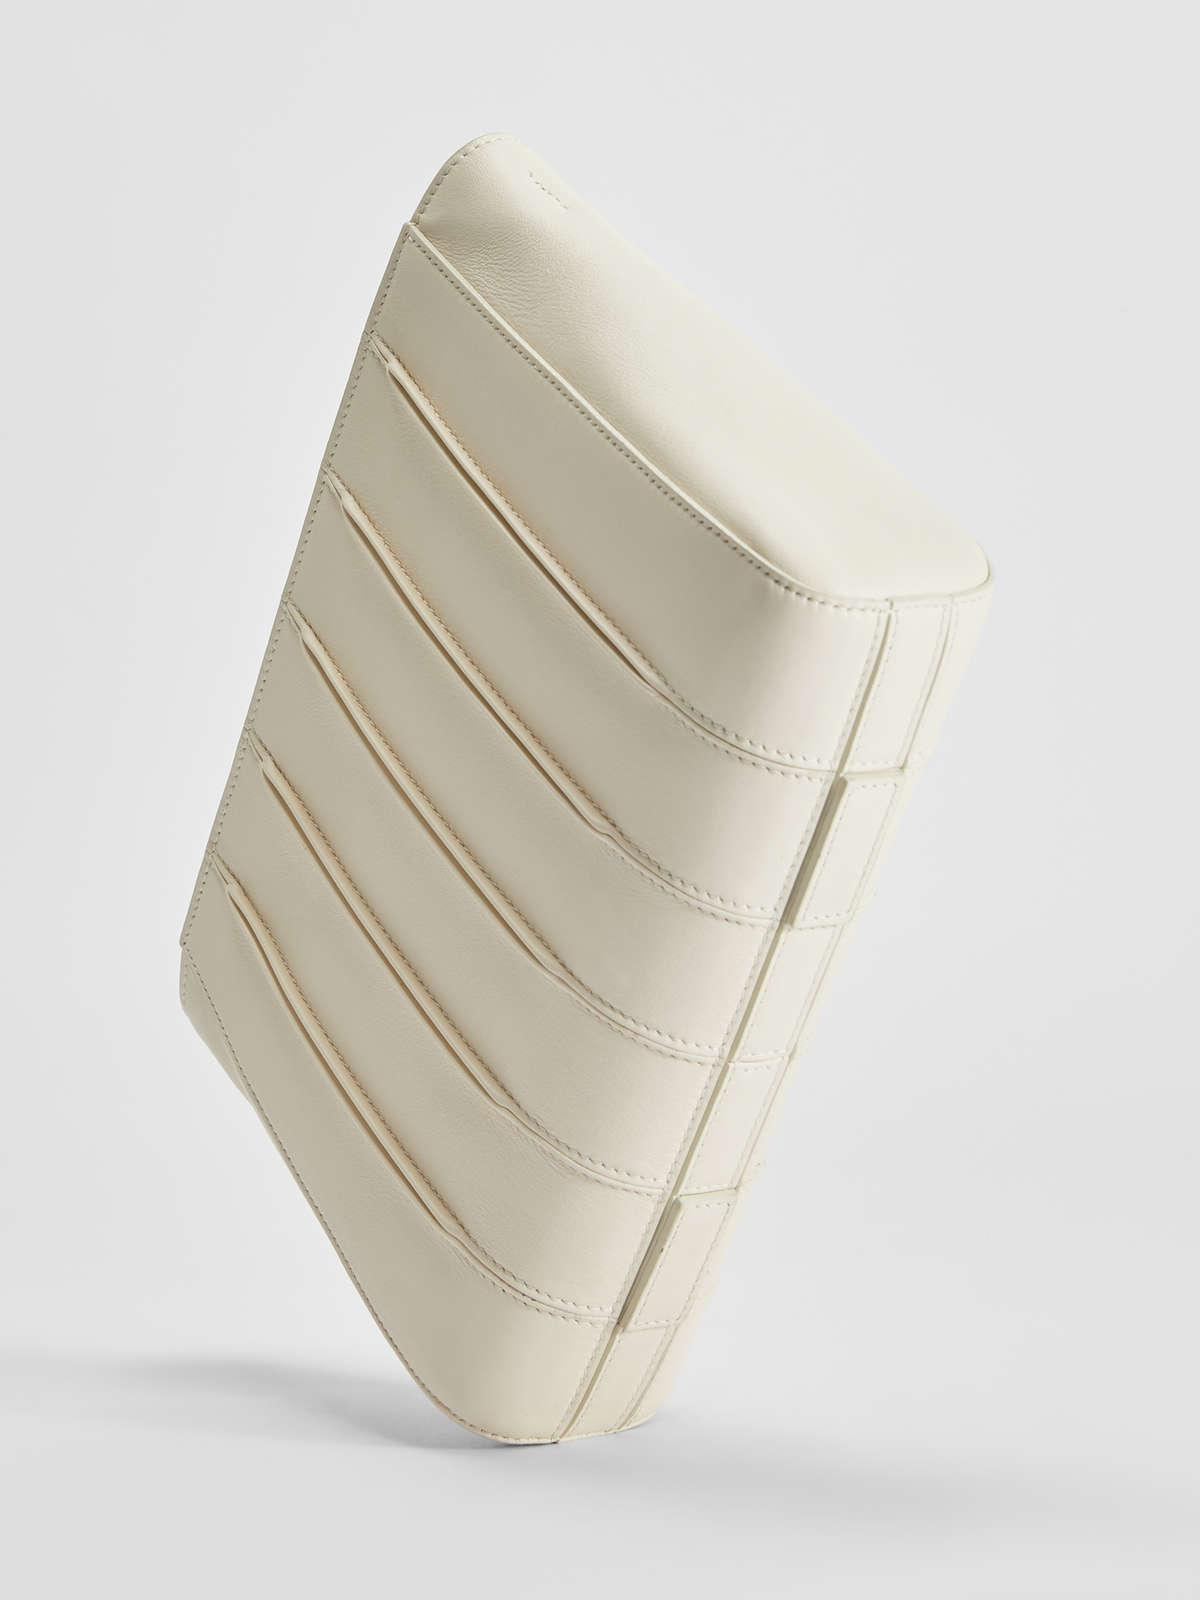 Womens Max Mara Whitney Bag   Whitney Bag Clutch In Smooth Leather Ivory